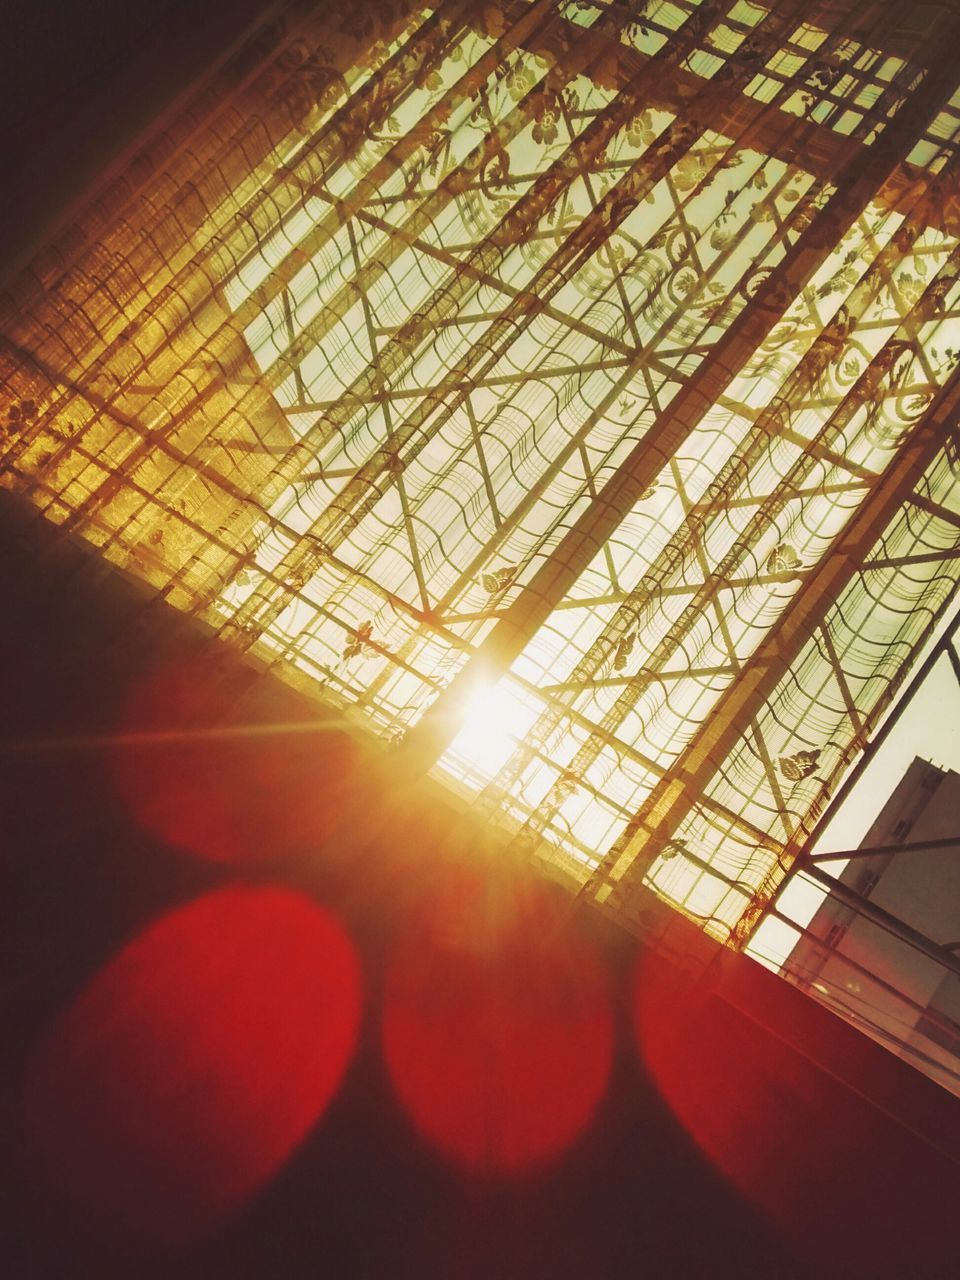 indoors, no people, sunlight, red, low angle view, day, close-up, architecture, sky